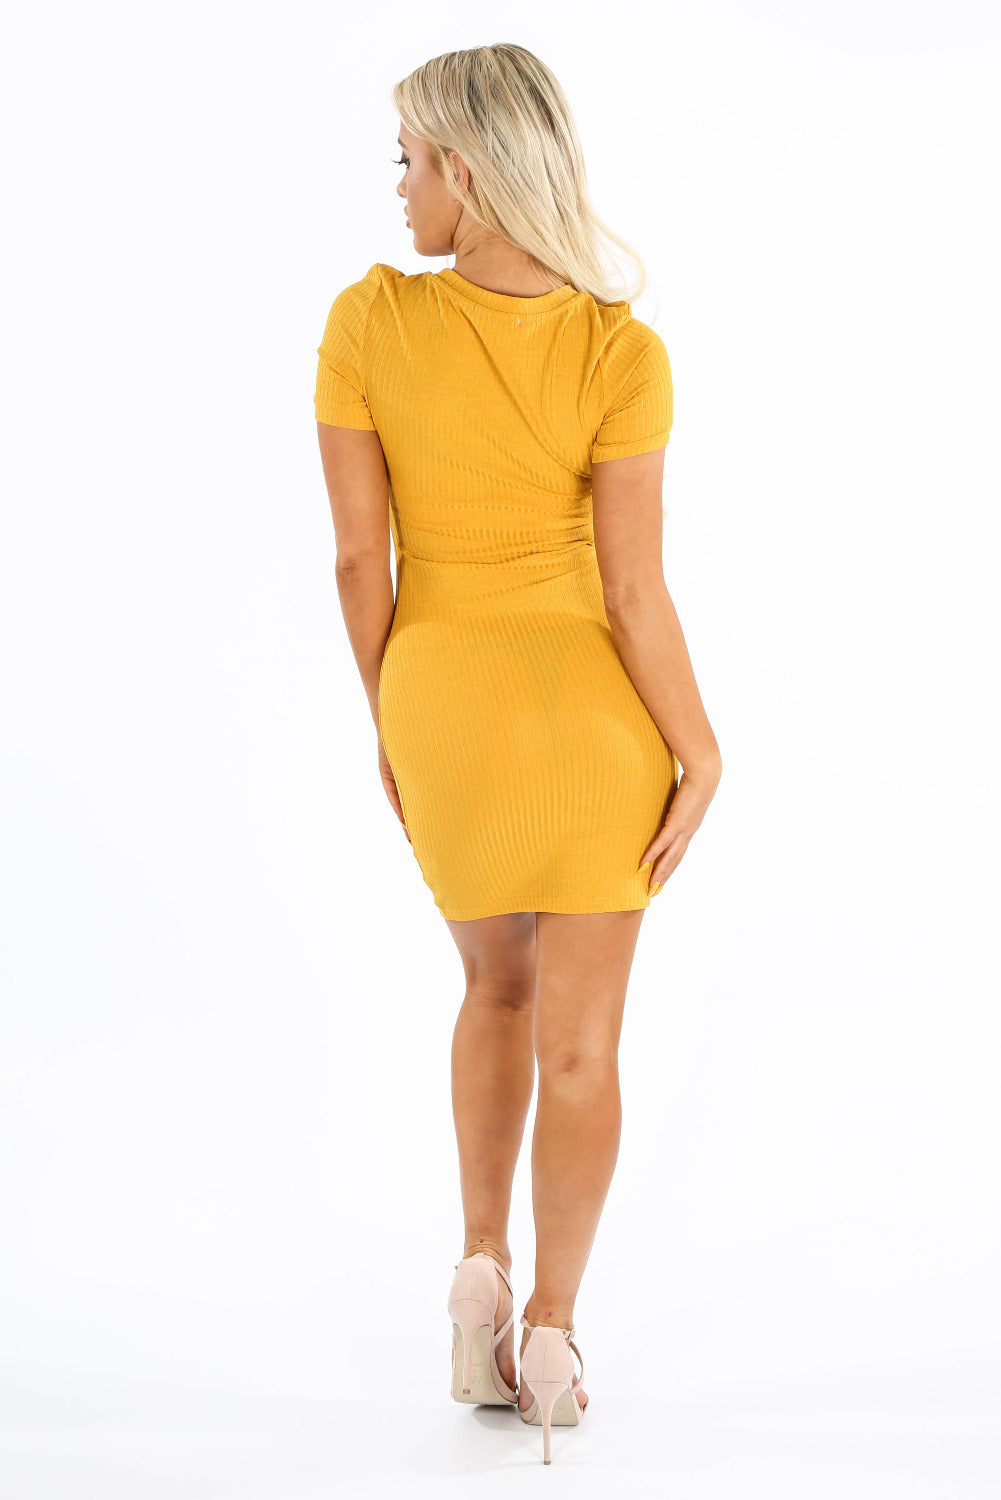 Ribbed Bodycon Jersey Dress In Mustard